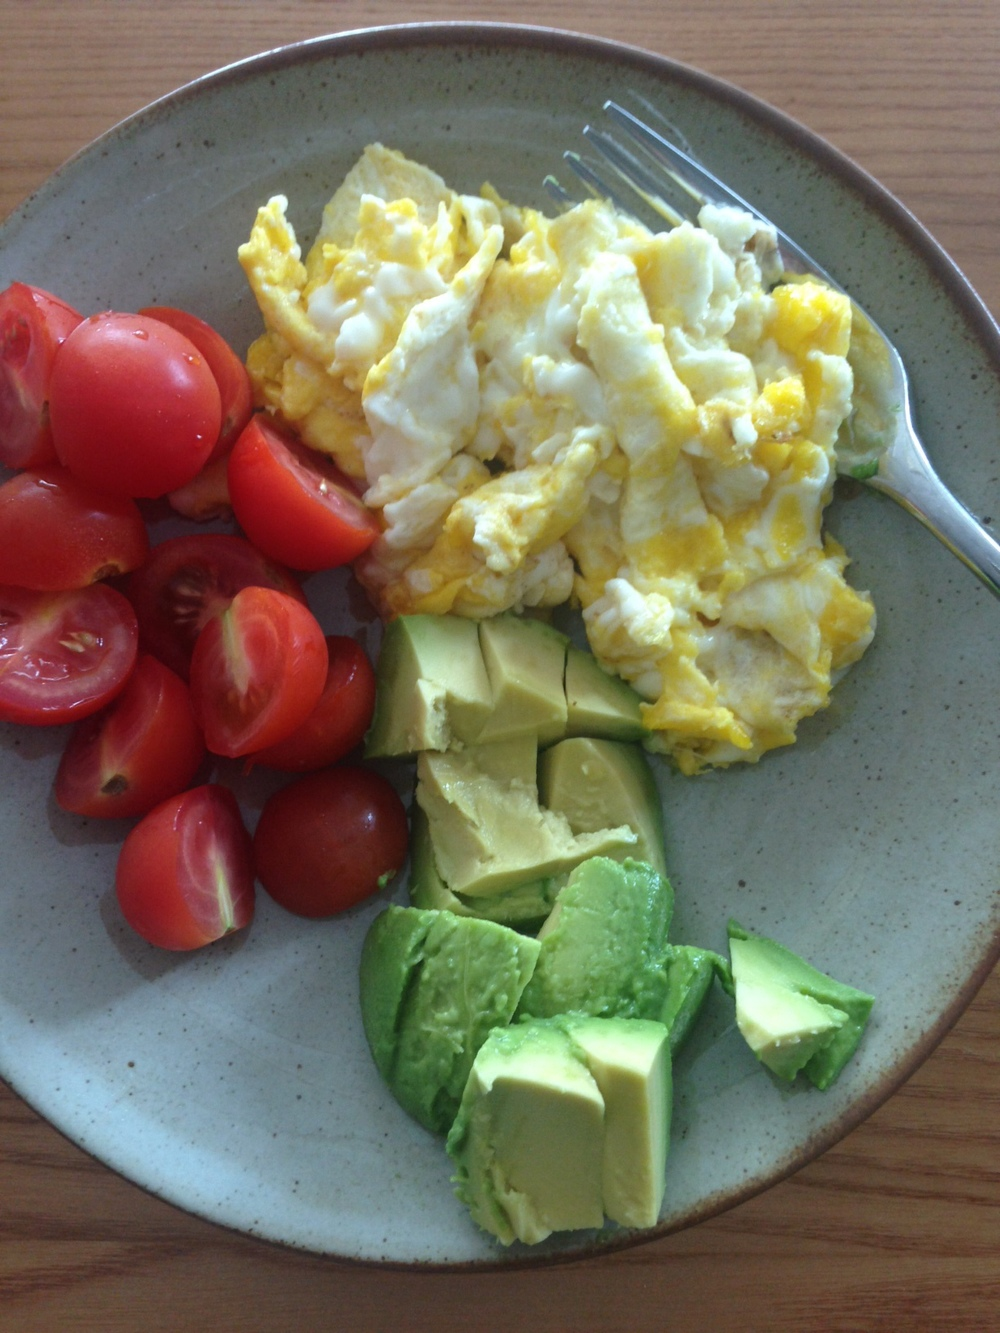 A simple breakfast: Scrambled eggs, avocados & cherry tomatoes